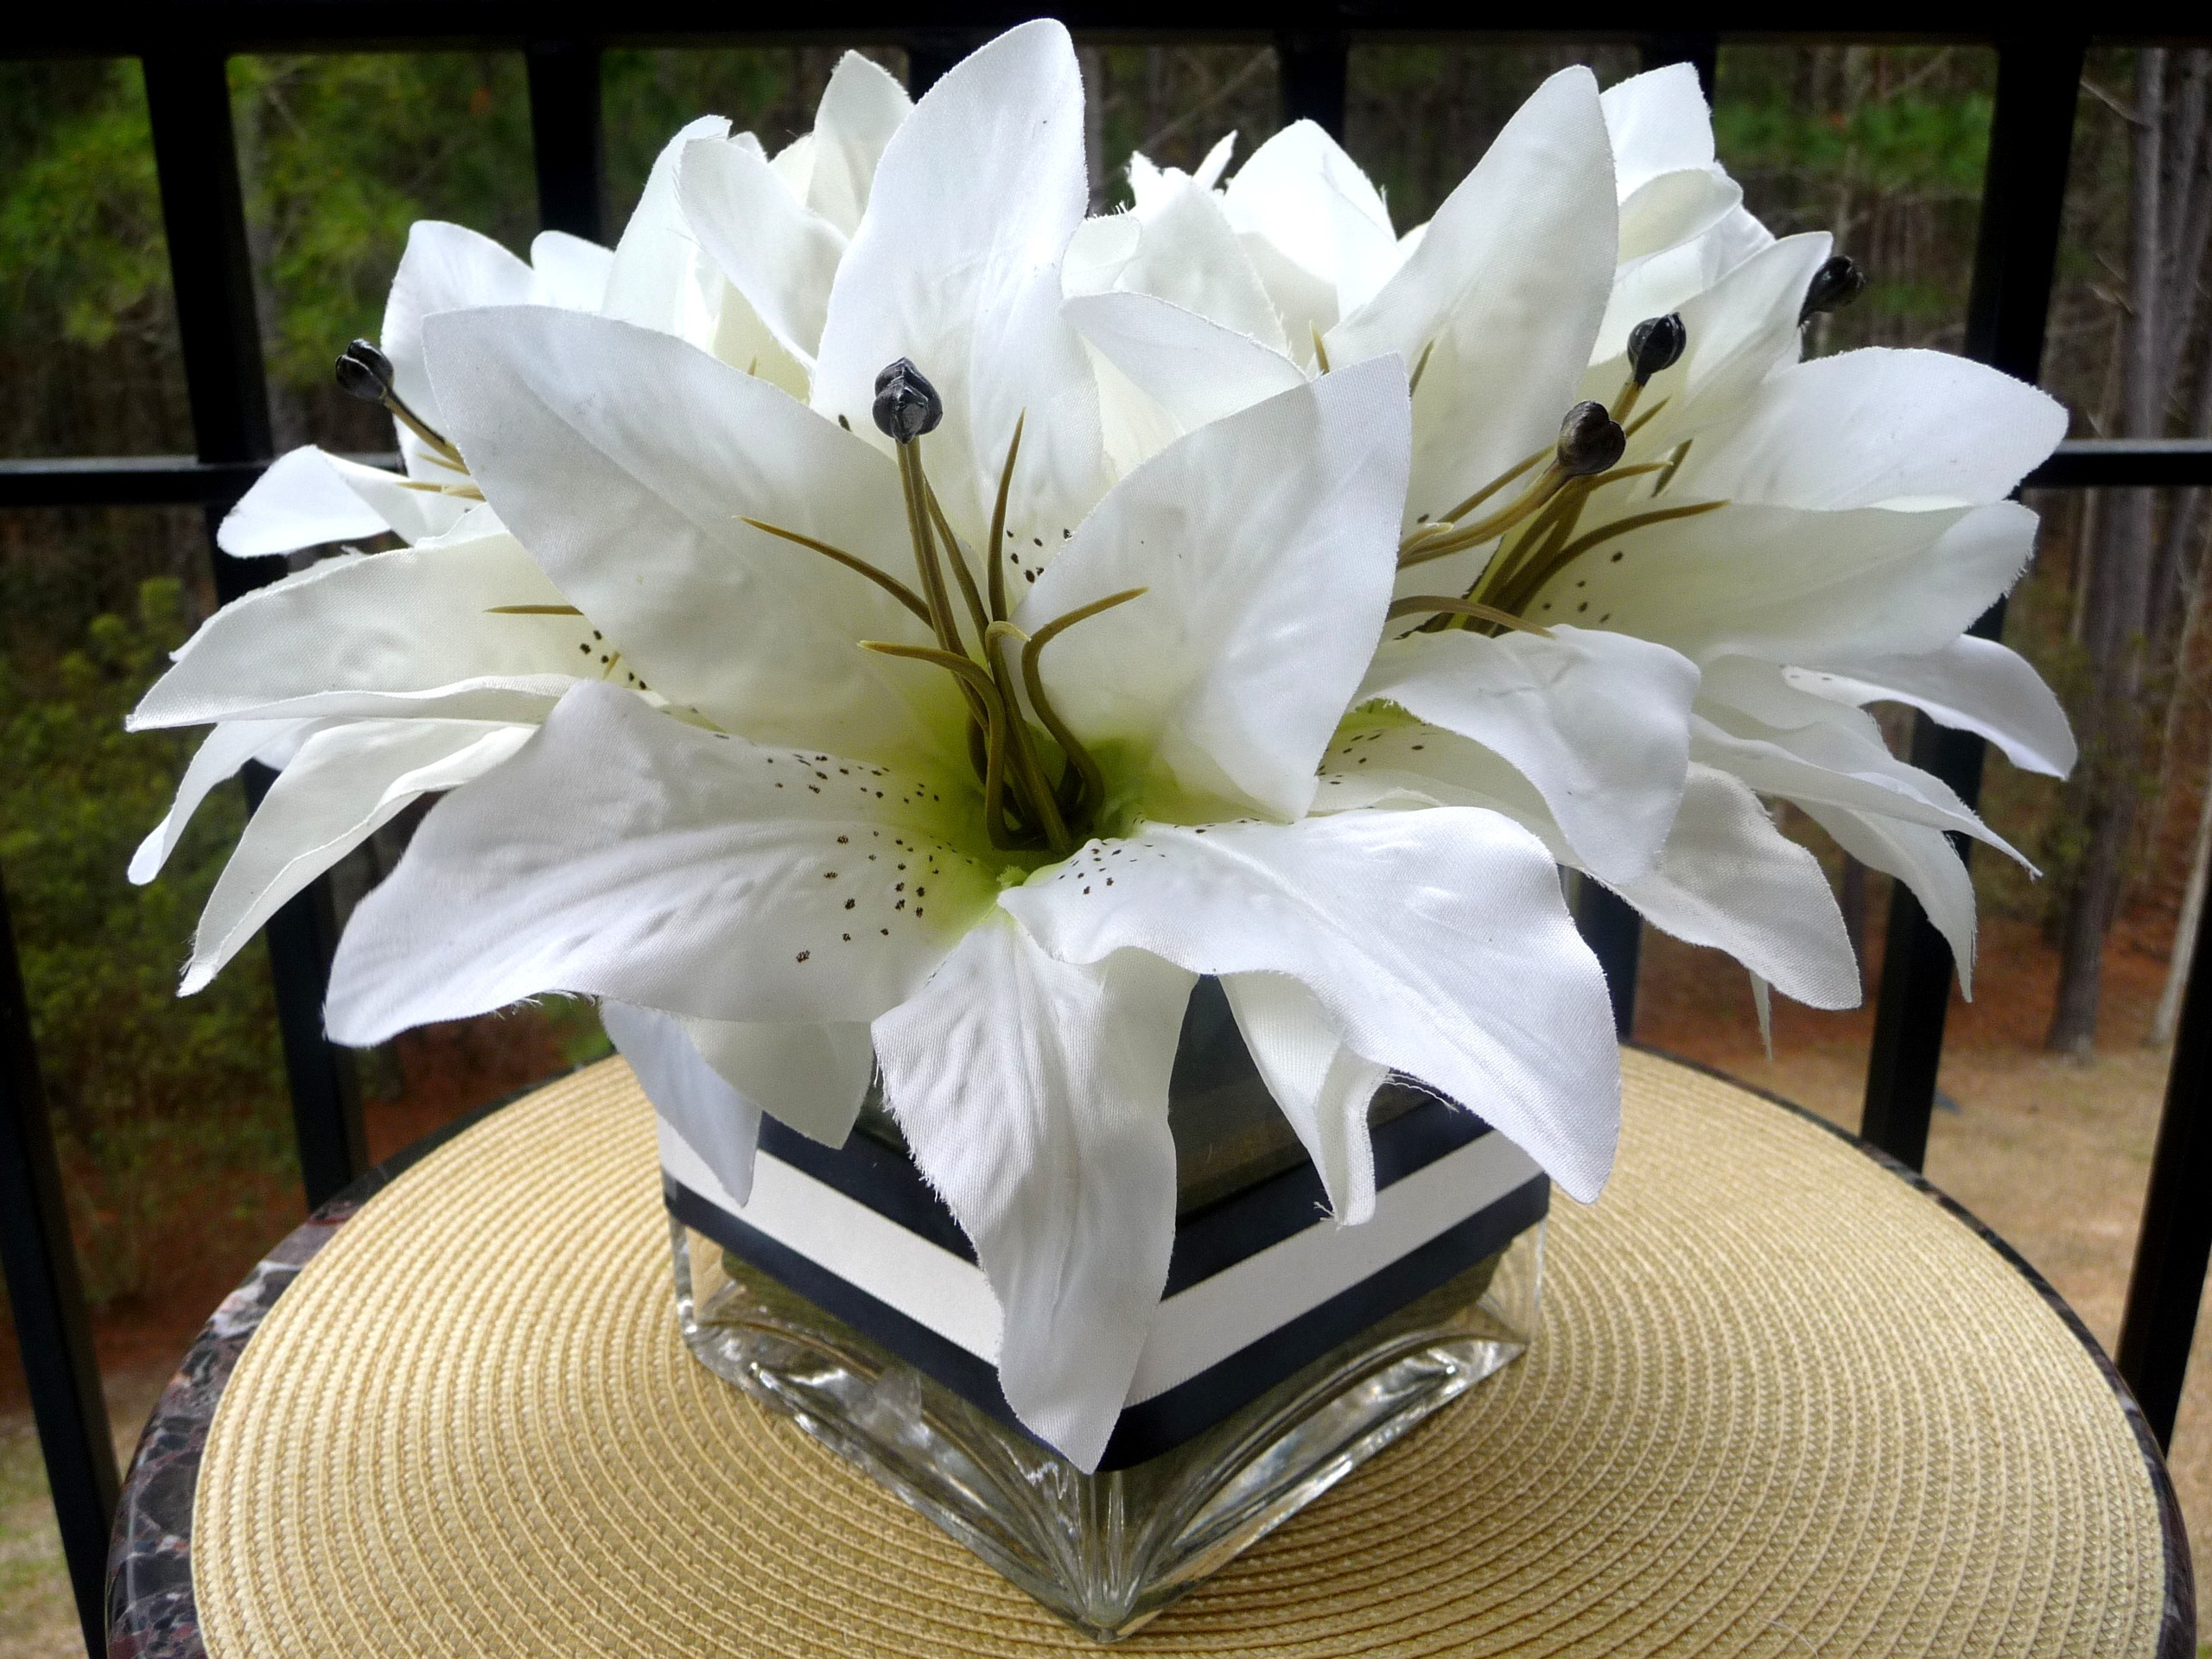 Ceremony, Inspiration, Reception, Flowers & Decor, white, black, Ceremony Flowers, Centerpieces, Flowers, Centerpiece, Wedding, Lilies, Board, Silk, Luncheon, Savannah event decor